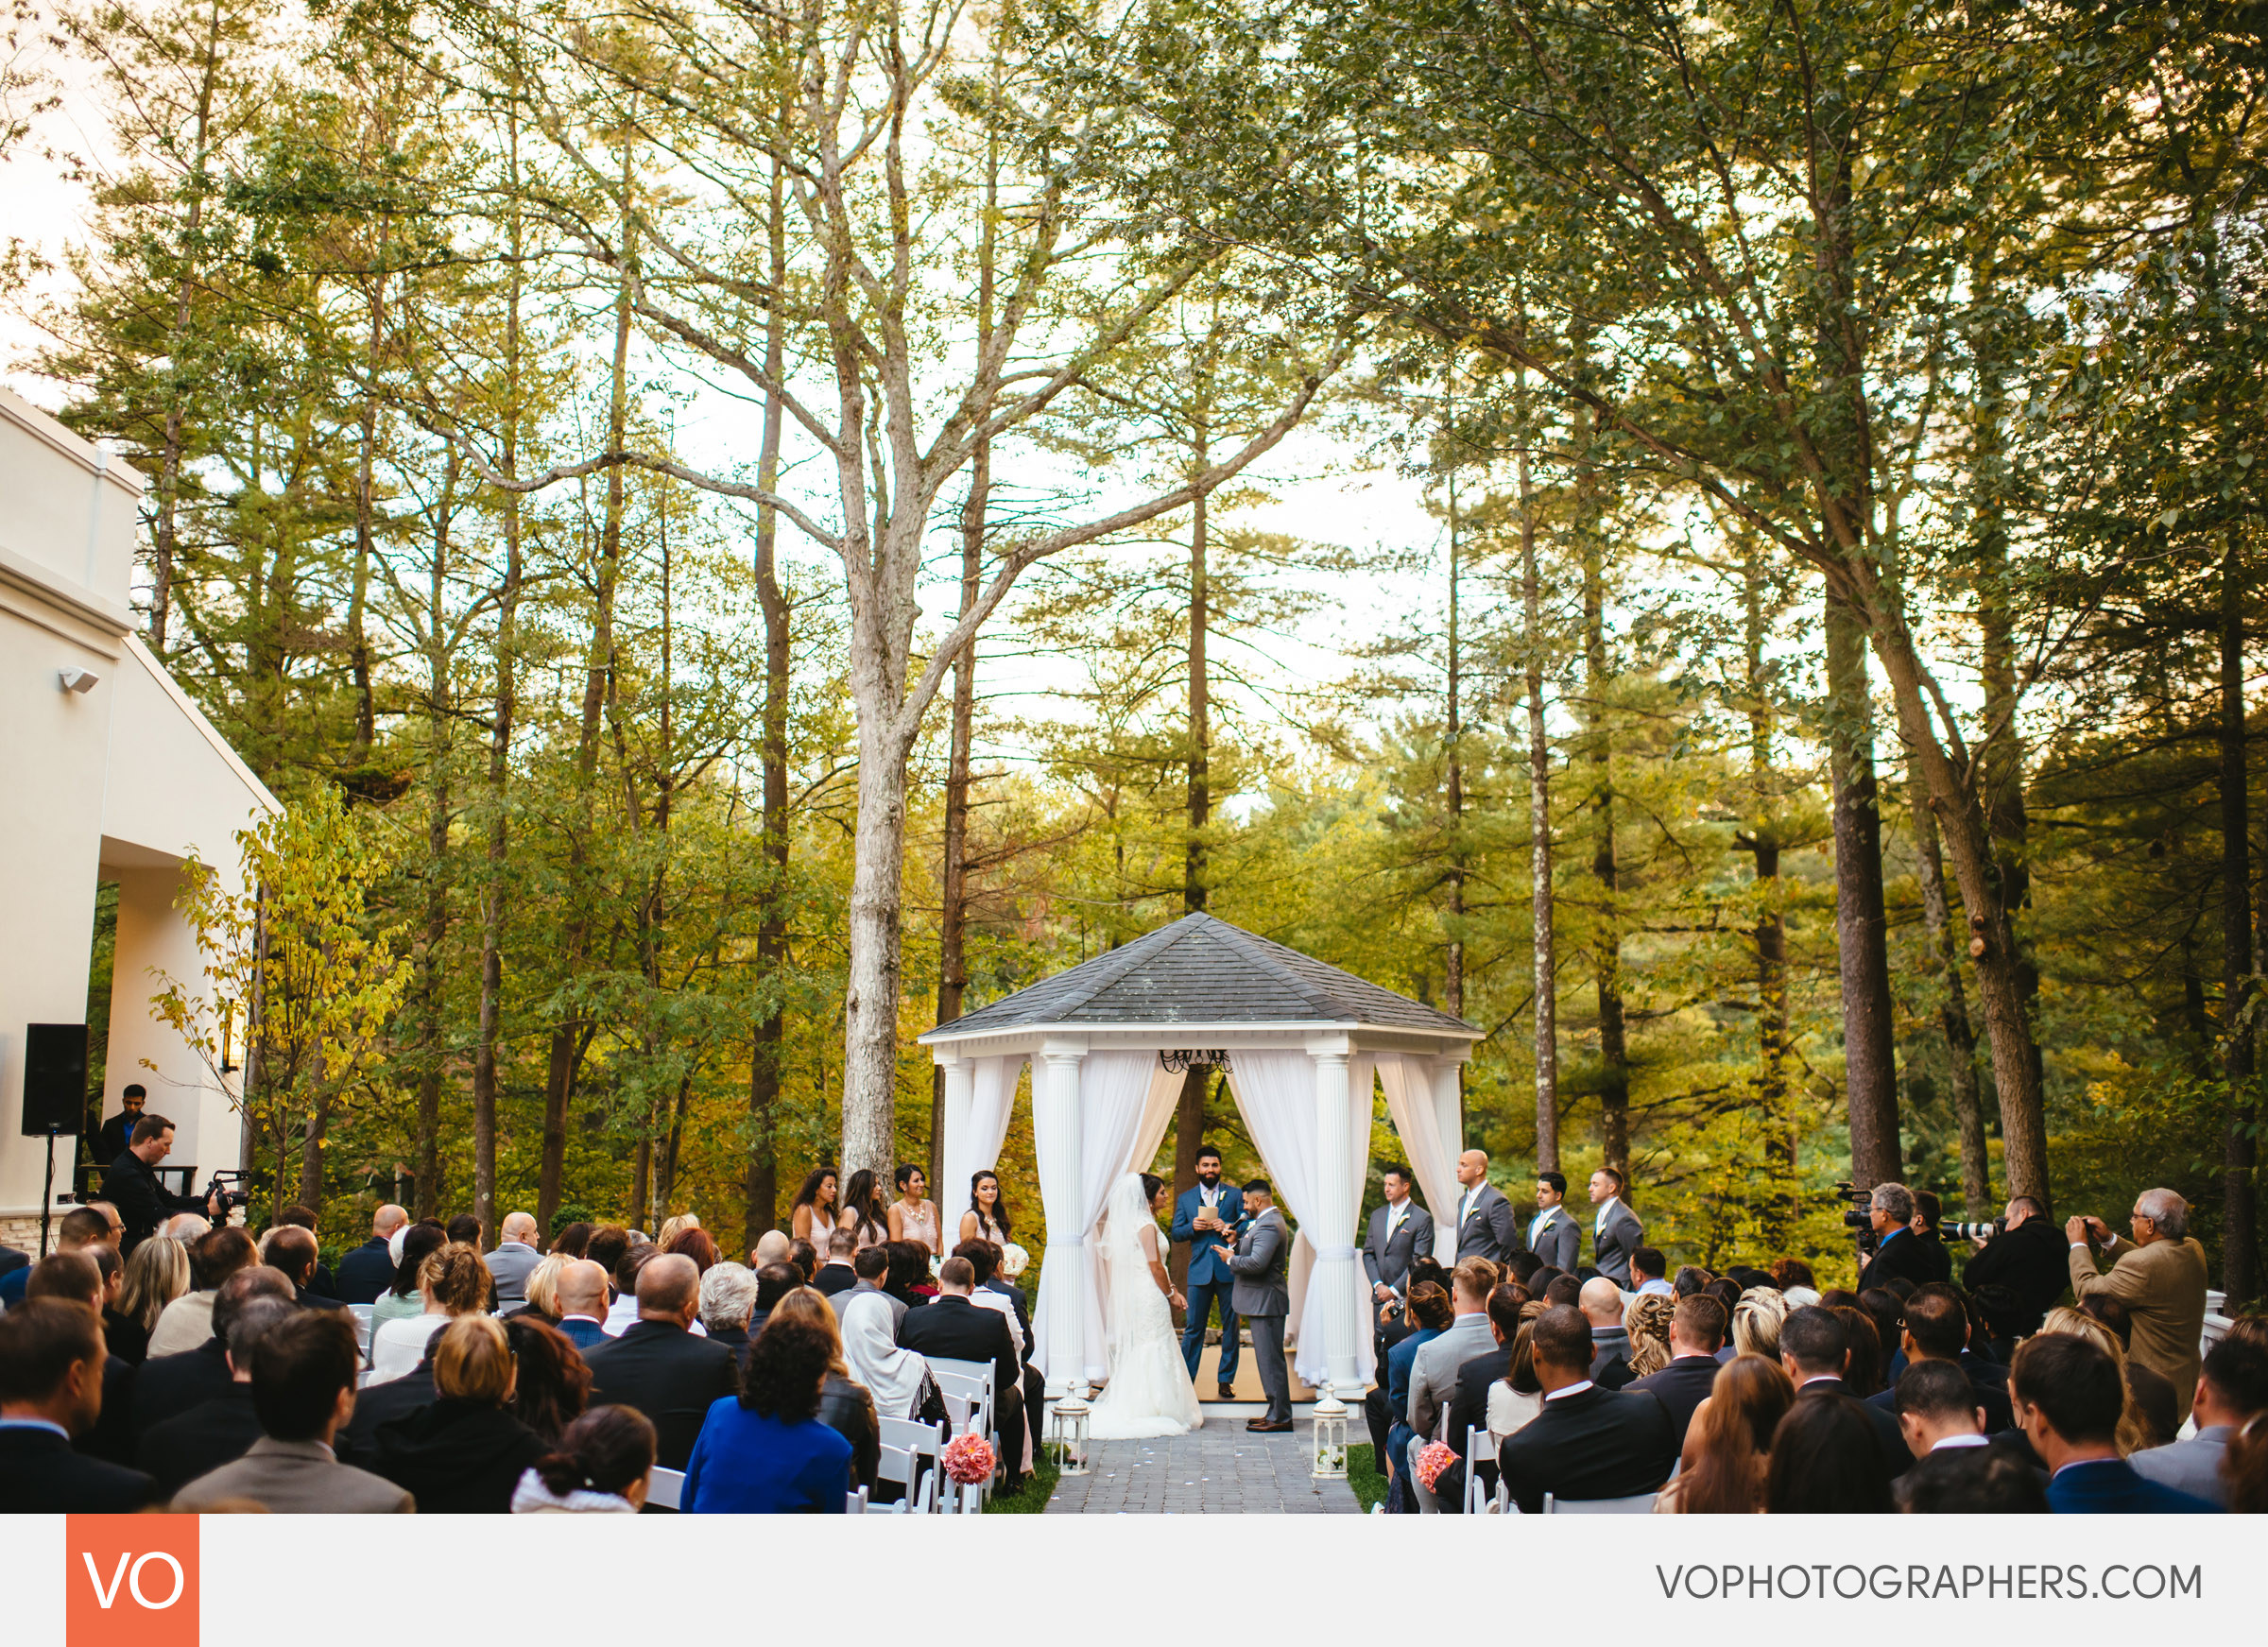 Oriana-Barem-Lakeview-Pavilion-Wedding-0028